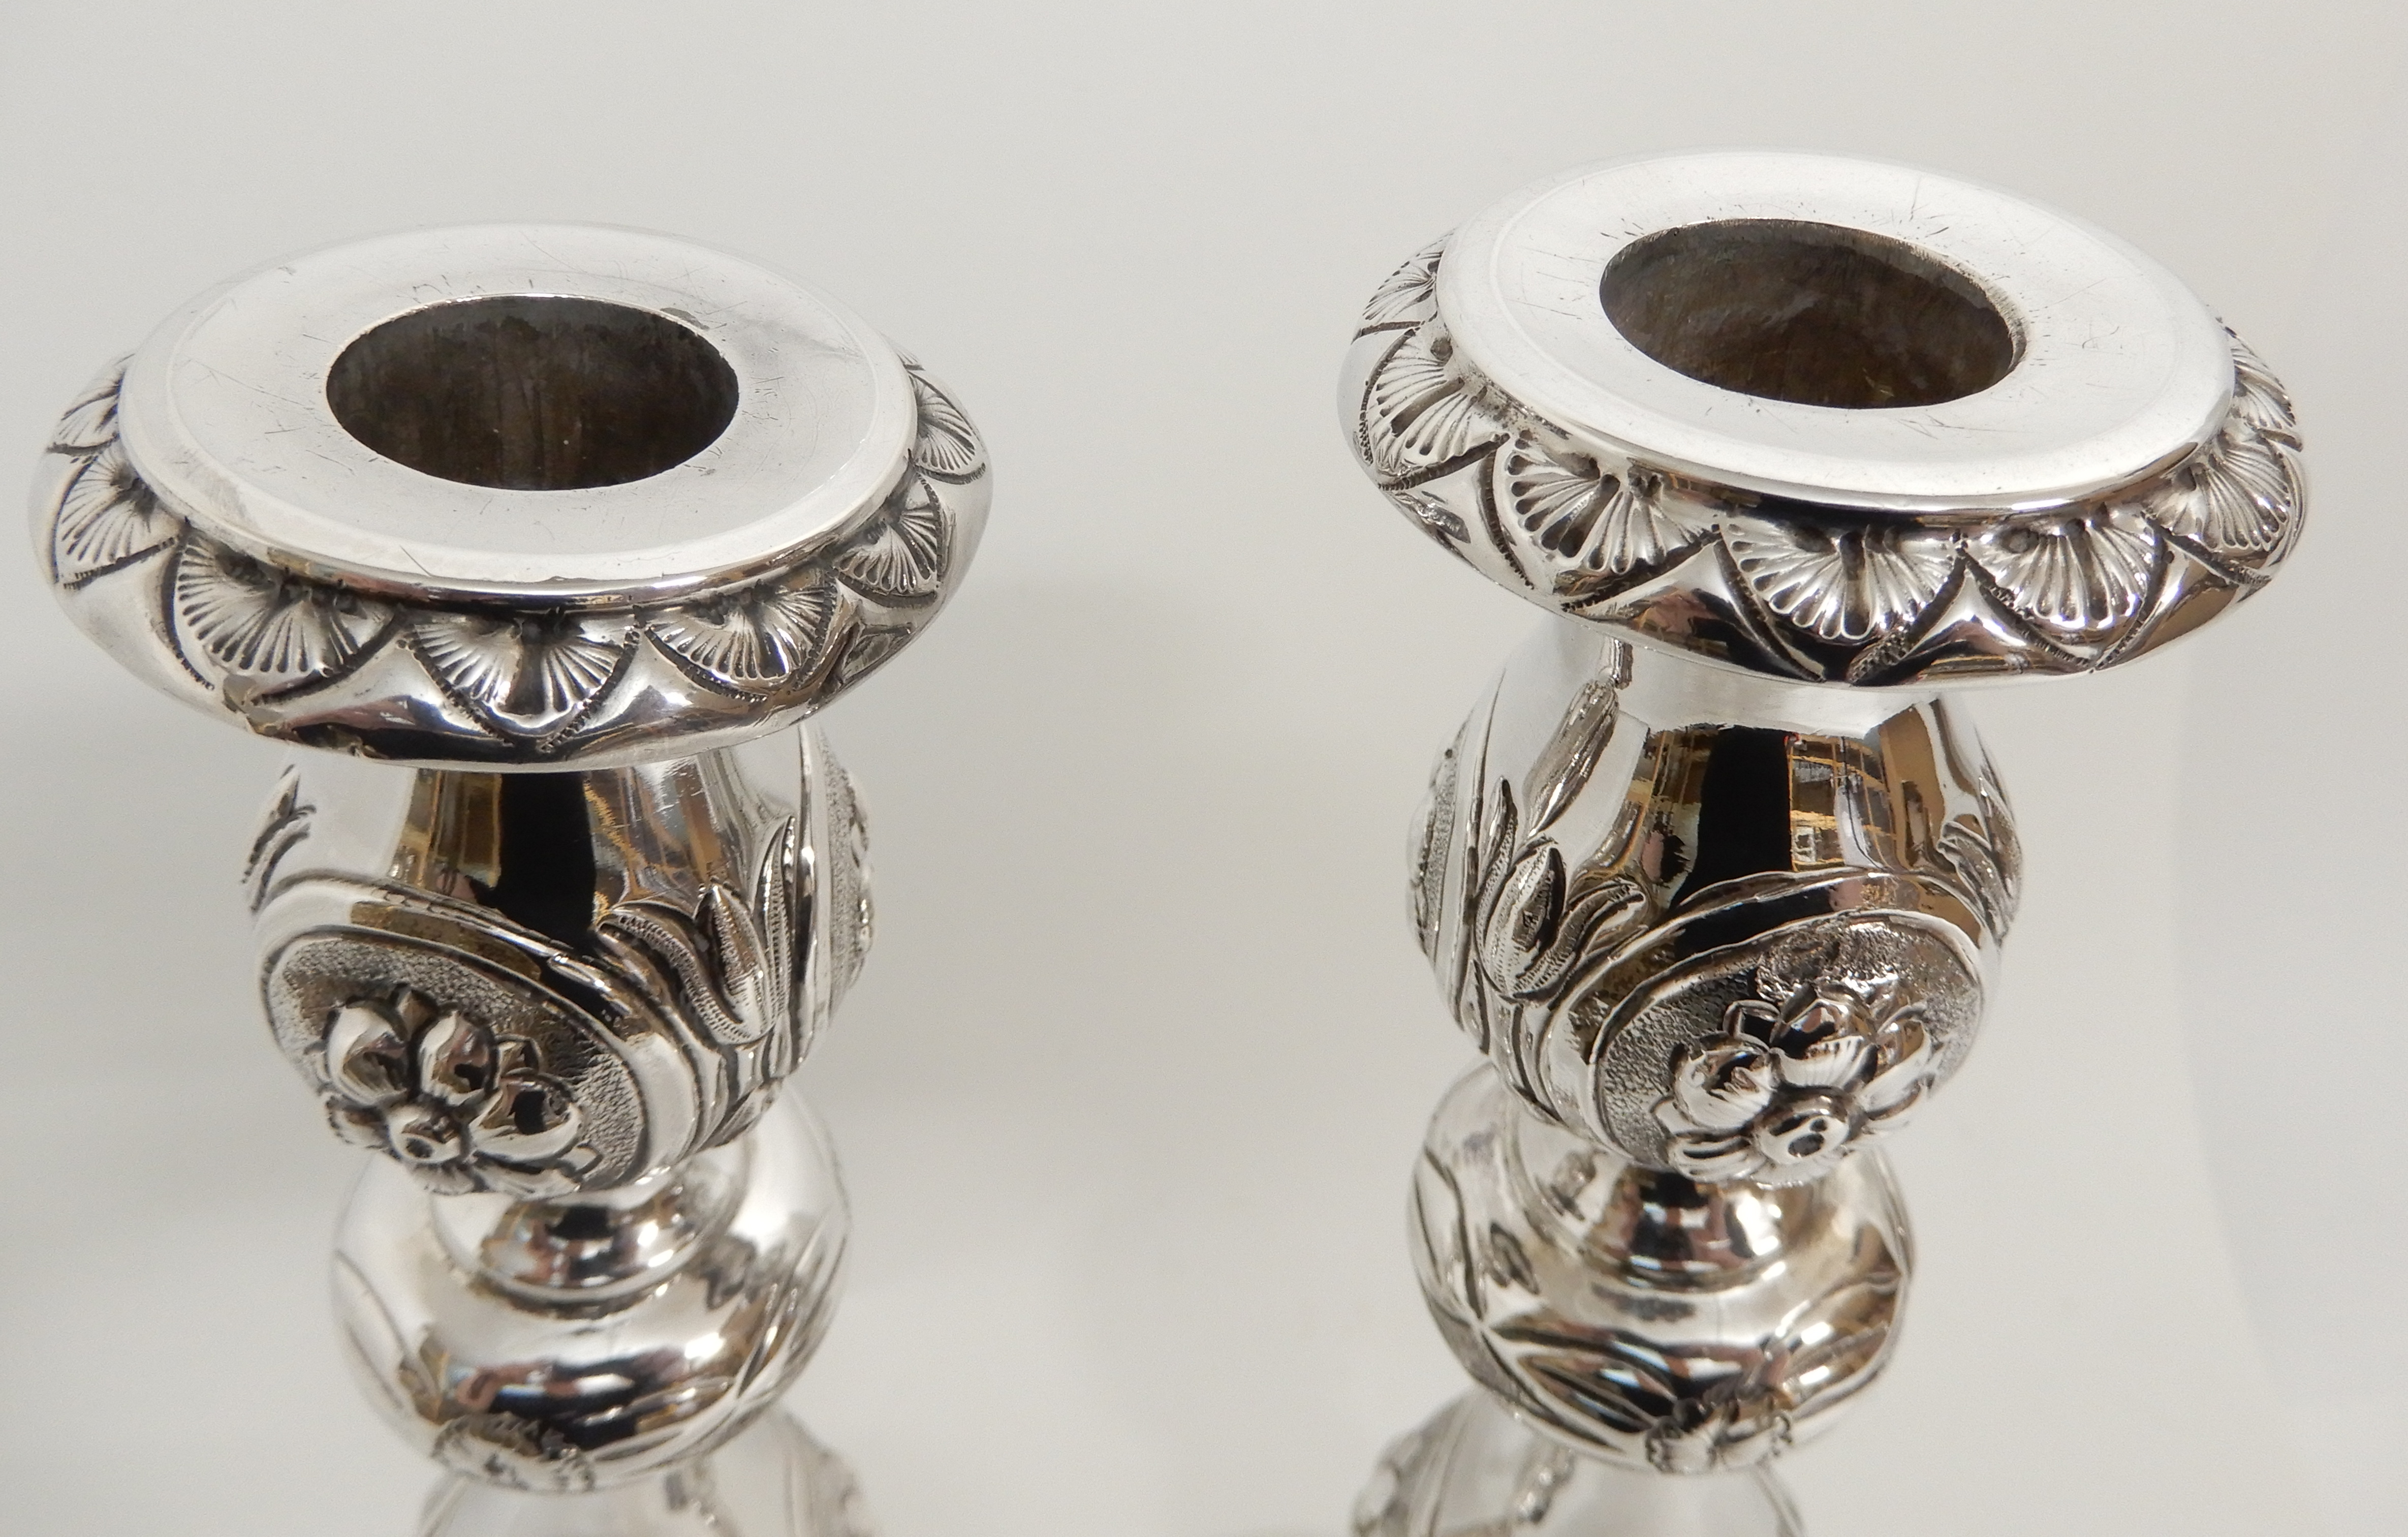 Lot 146 - A PAIR OF VICTORIAN SILVER CANDLESTICKS by Slade & Kempton, London 1902, with removable drip pans,